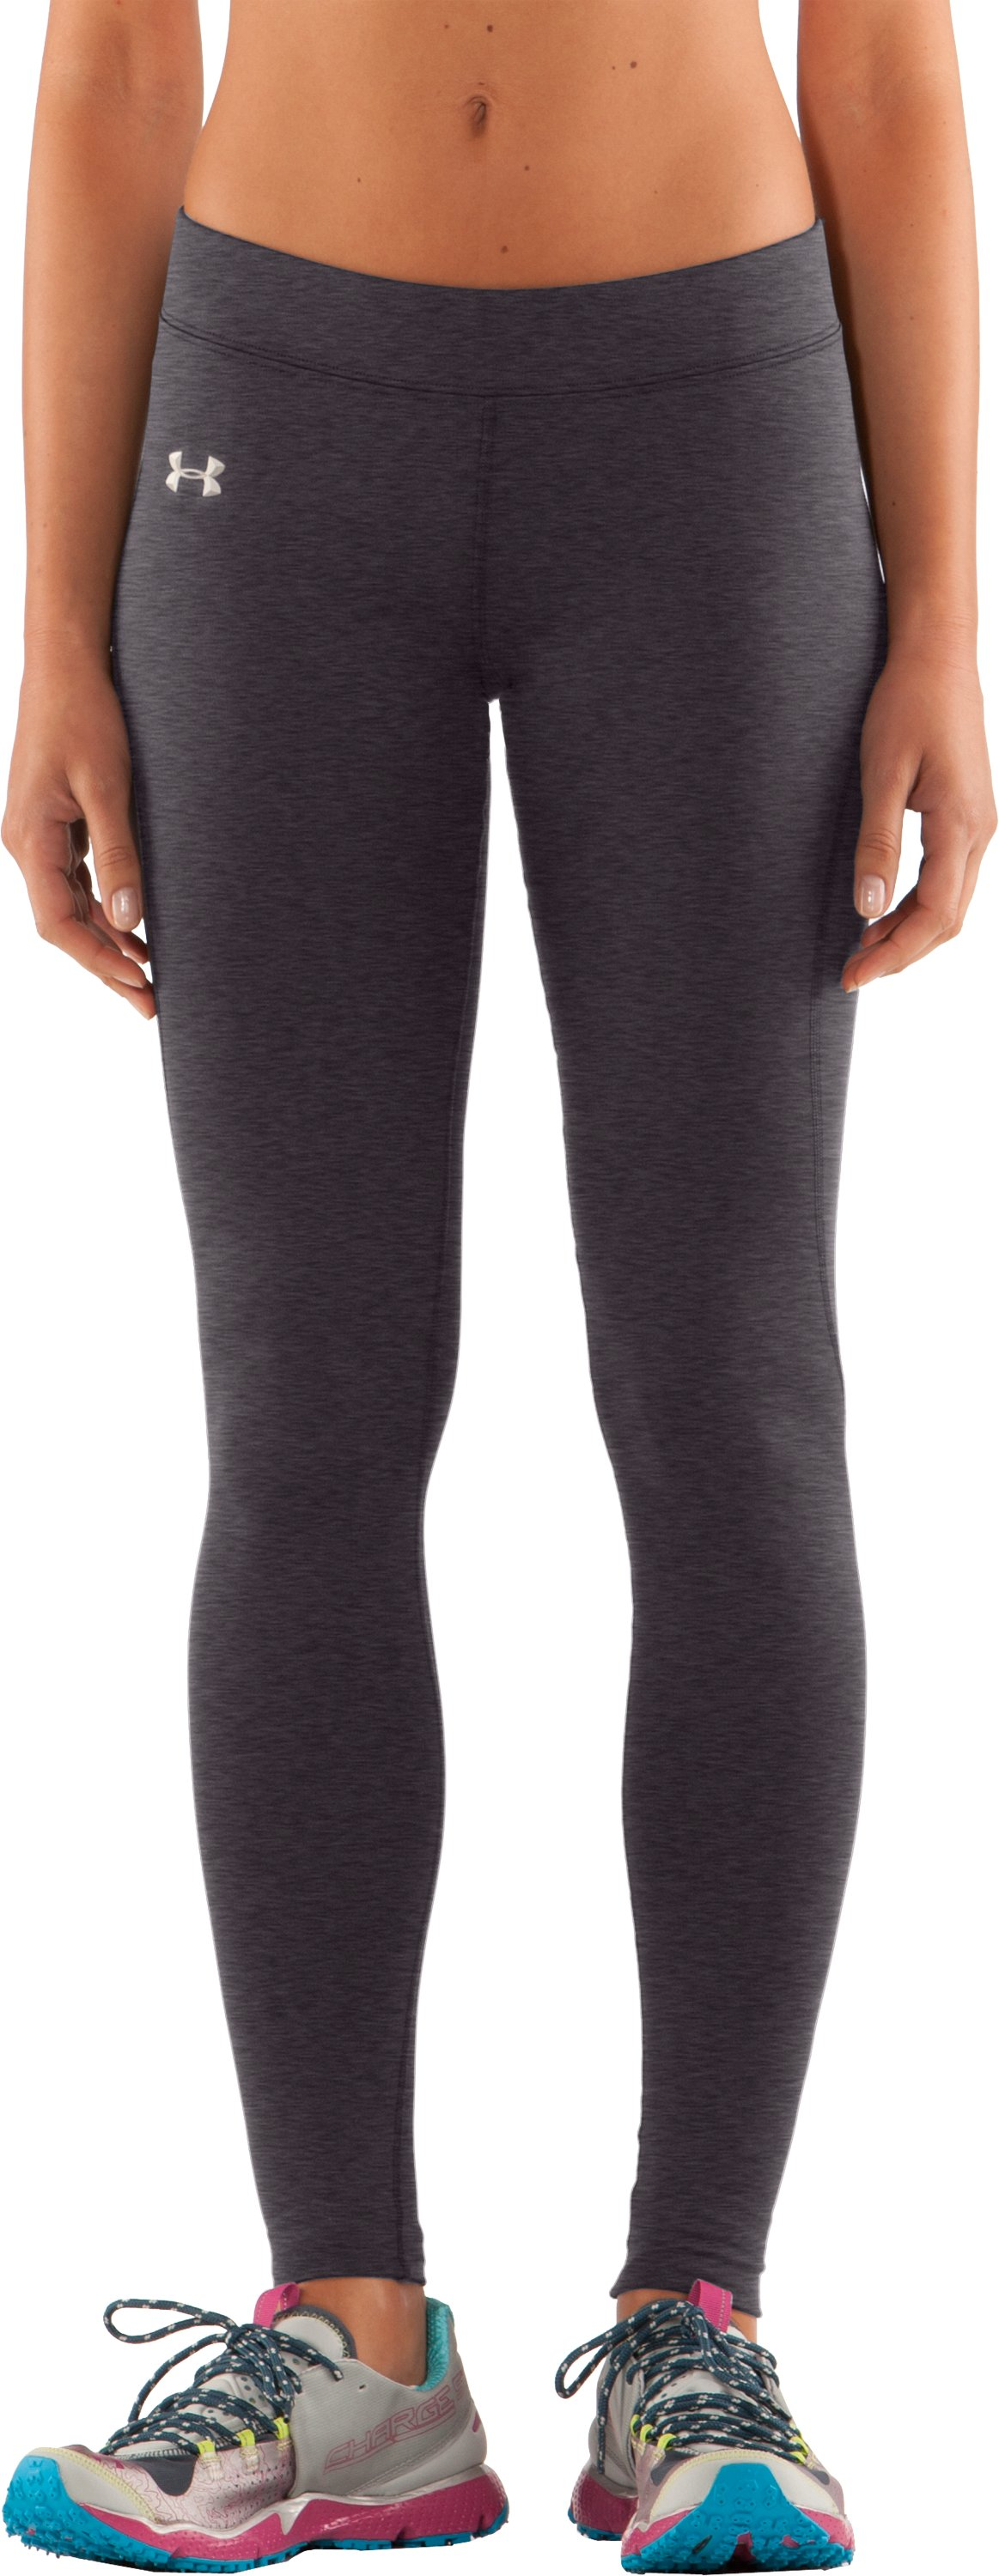 Women's ColdGear® Fitted Leggings, Carbon Heather, zoomed image